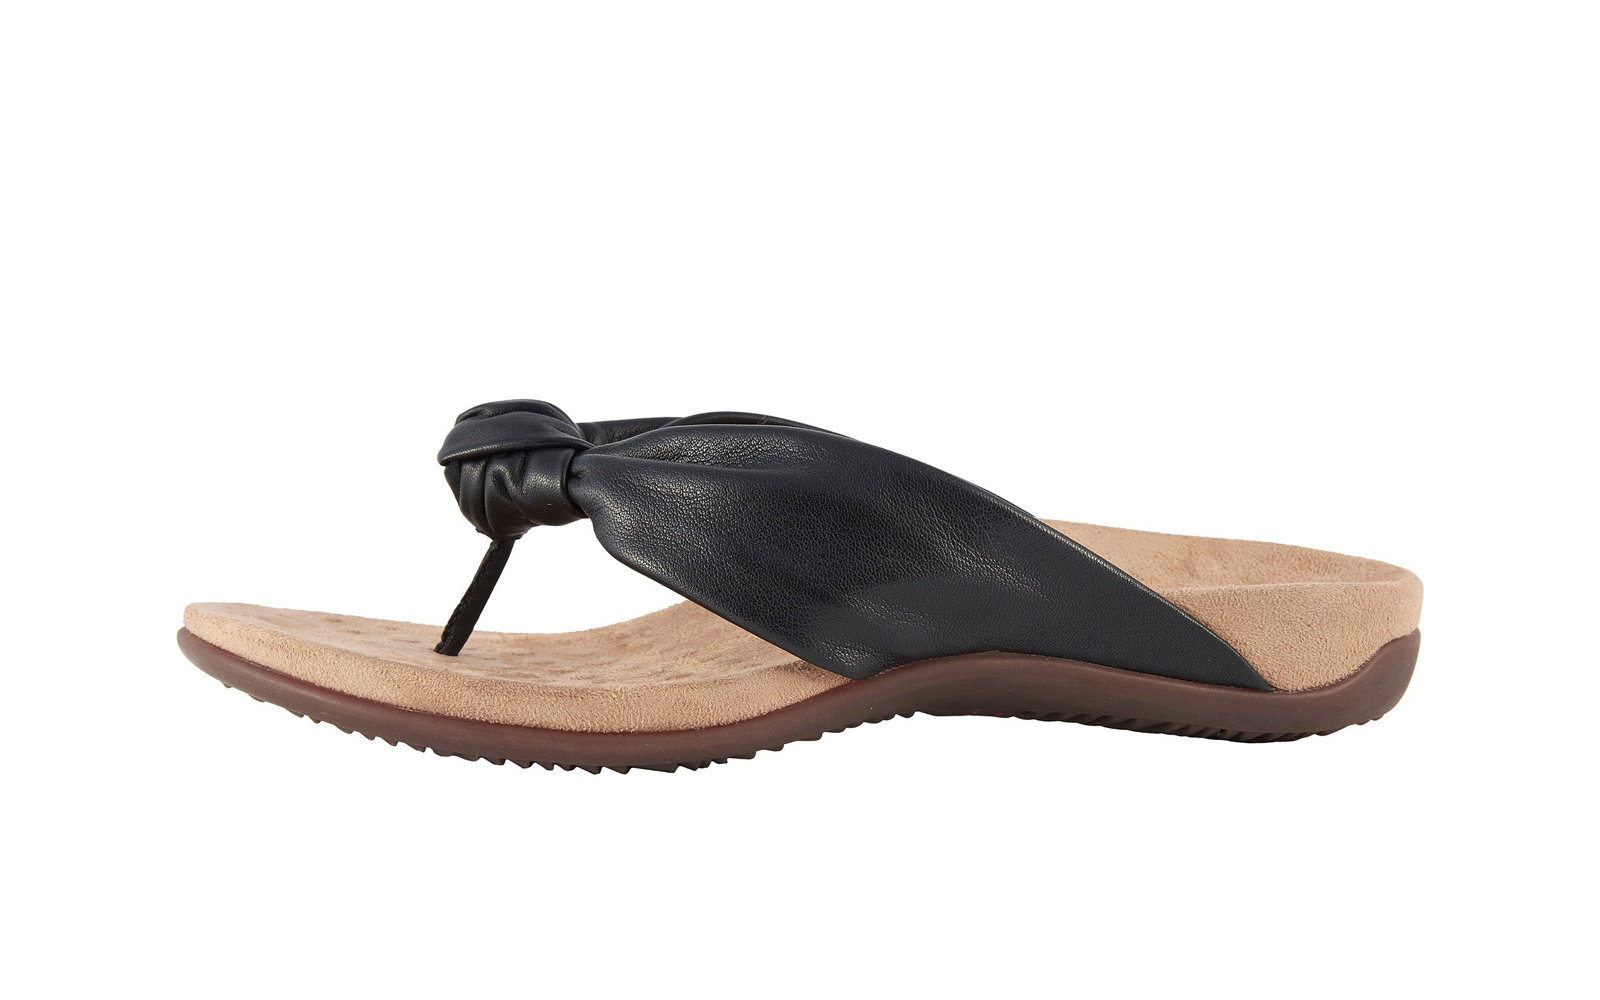 Zappos Comfy Travel-friendly Summer Sandals